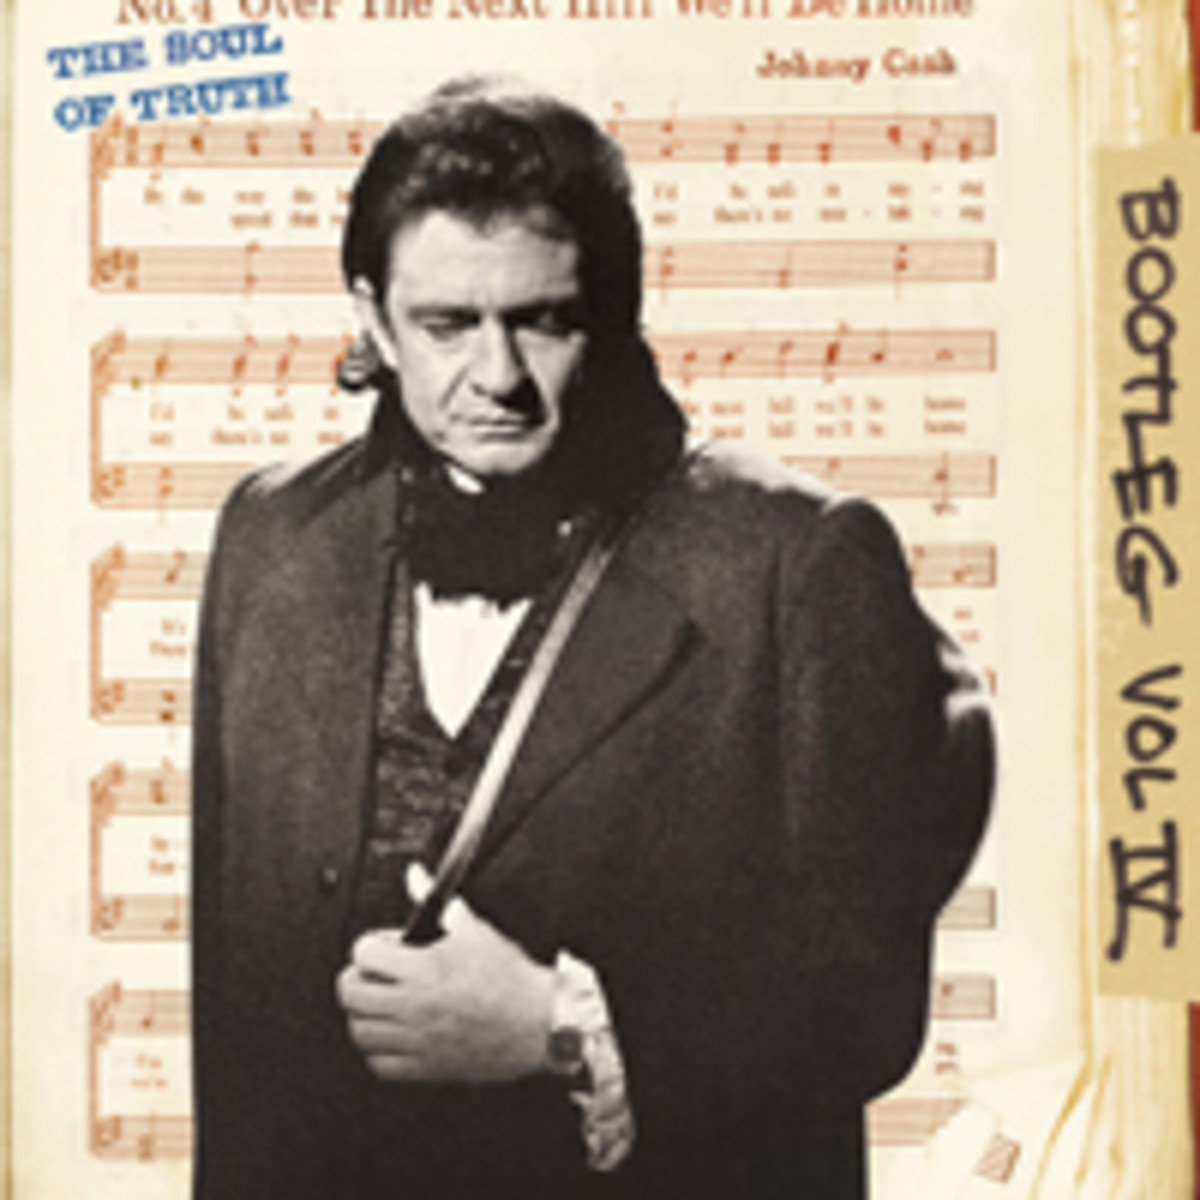 Johnny Cash Bootleg Volume IV The Soul of Truth